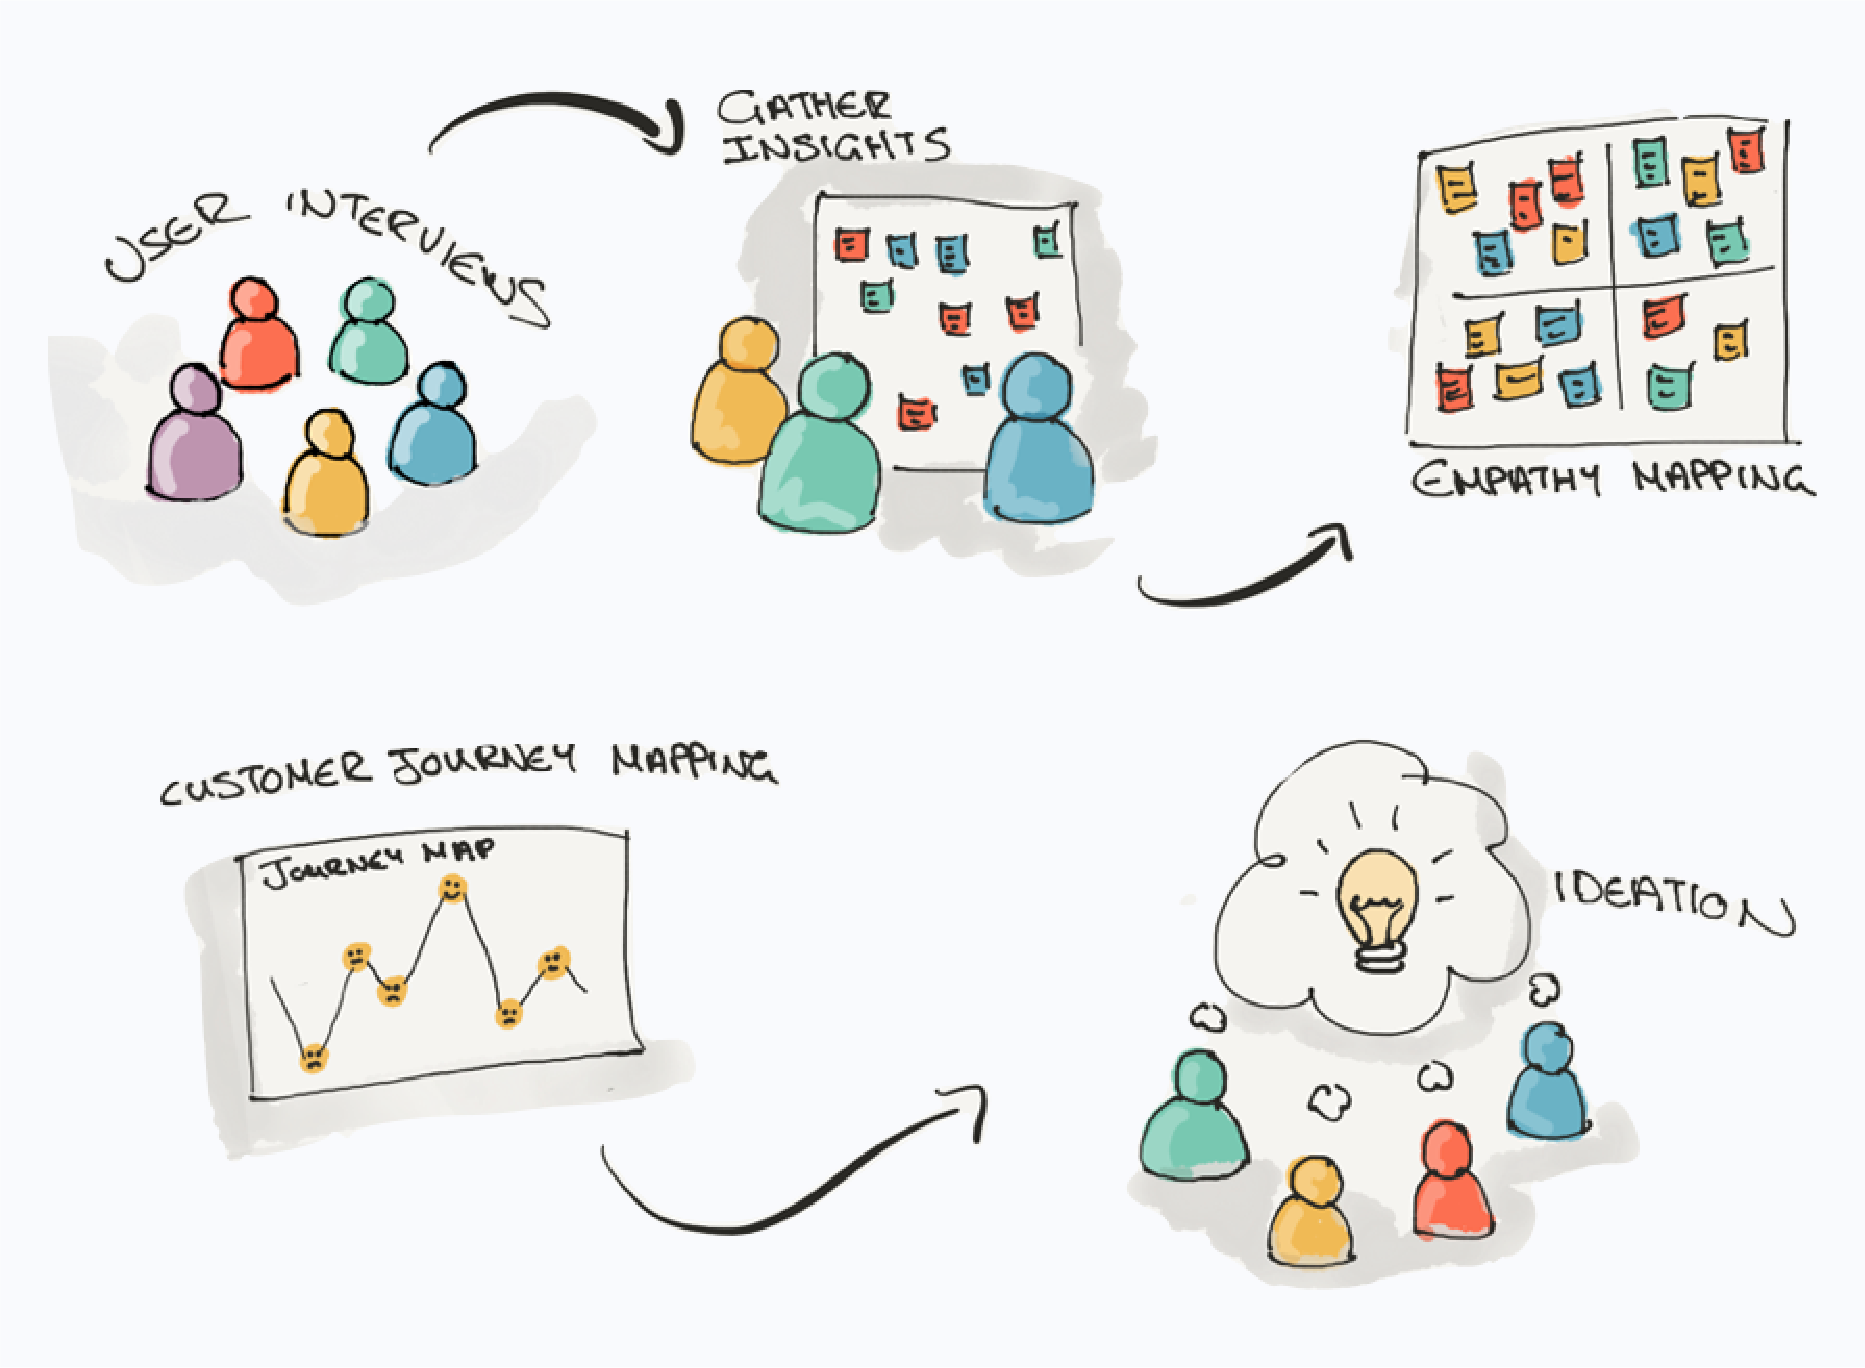 Customer Journey Mapping_Diagram-03.png